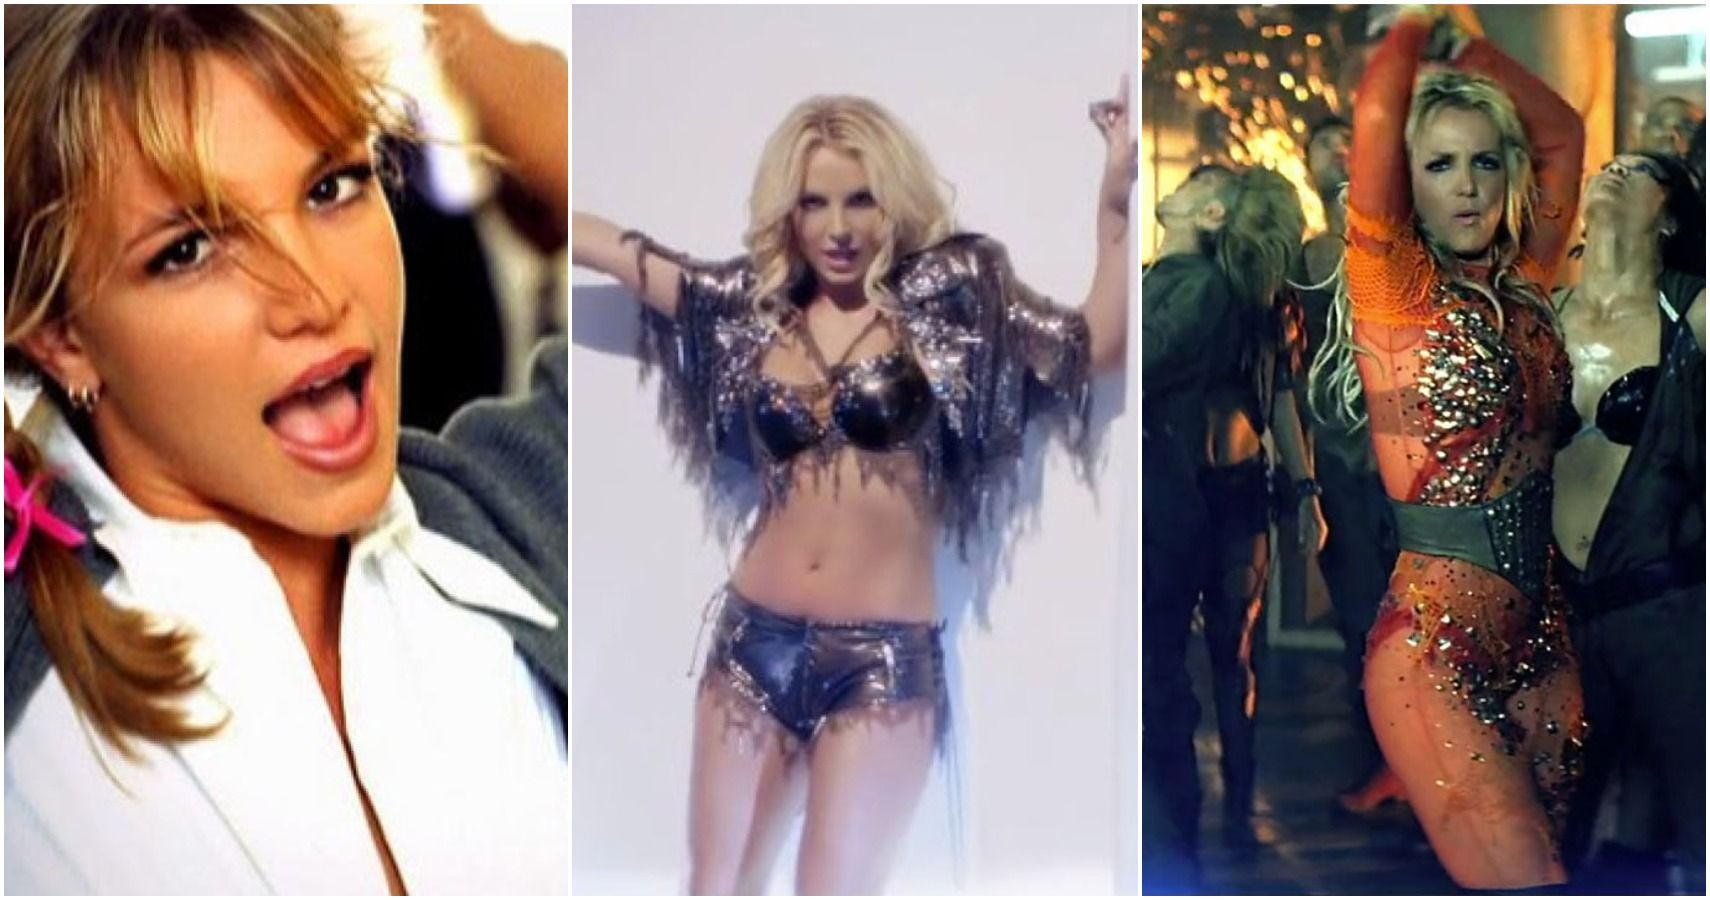 Ranking Britney Spears Most Iconic Music Video Outfits